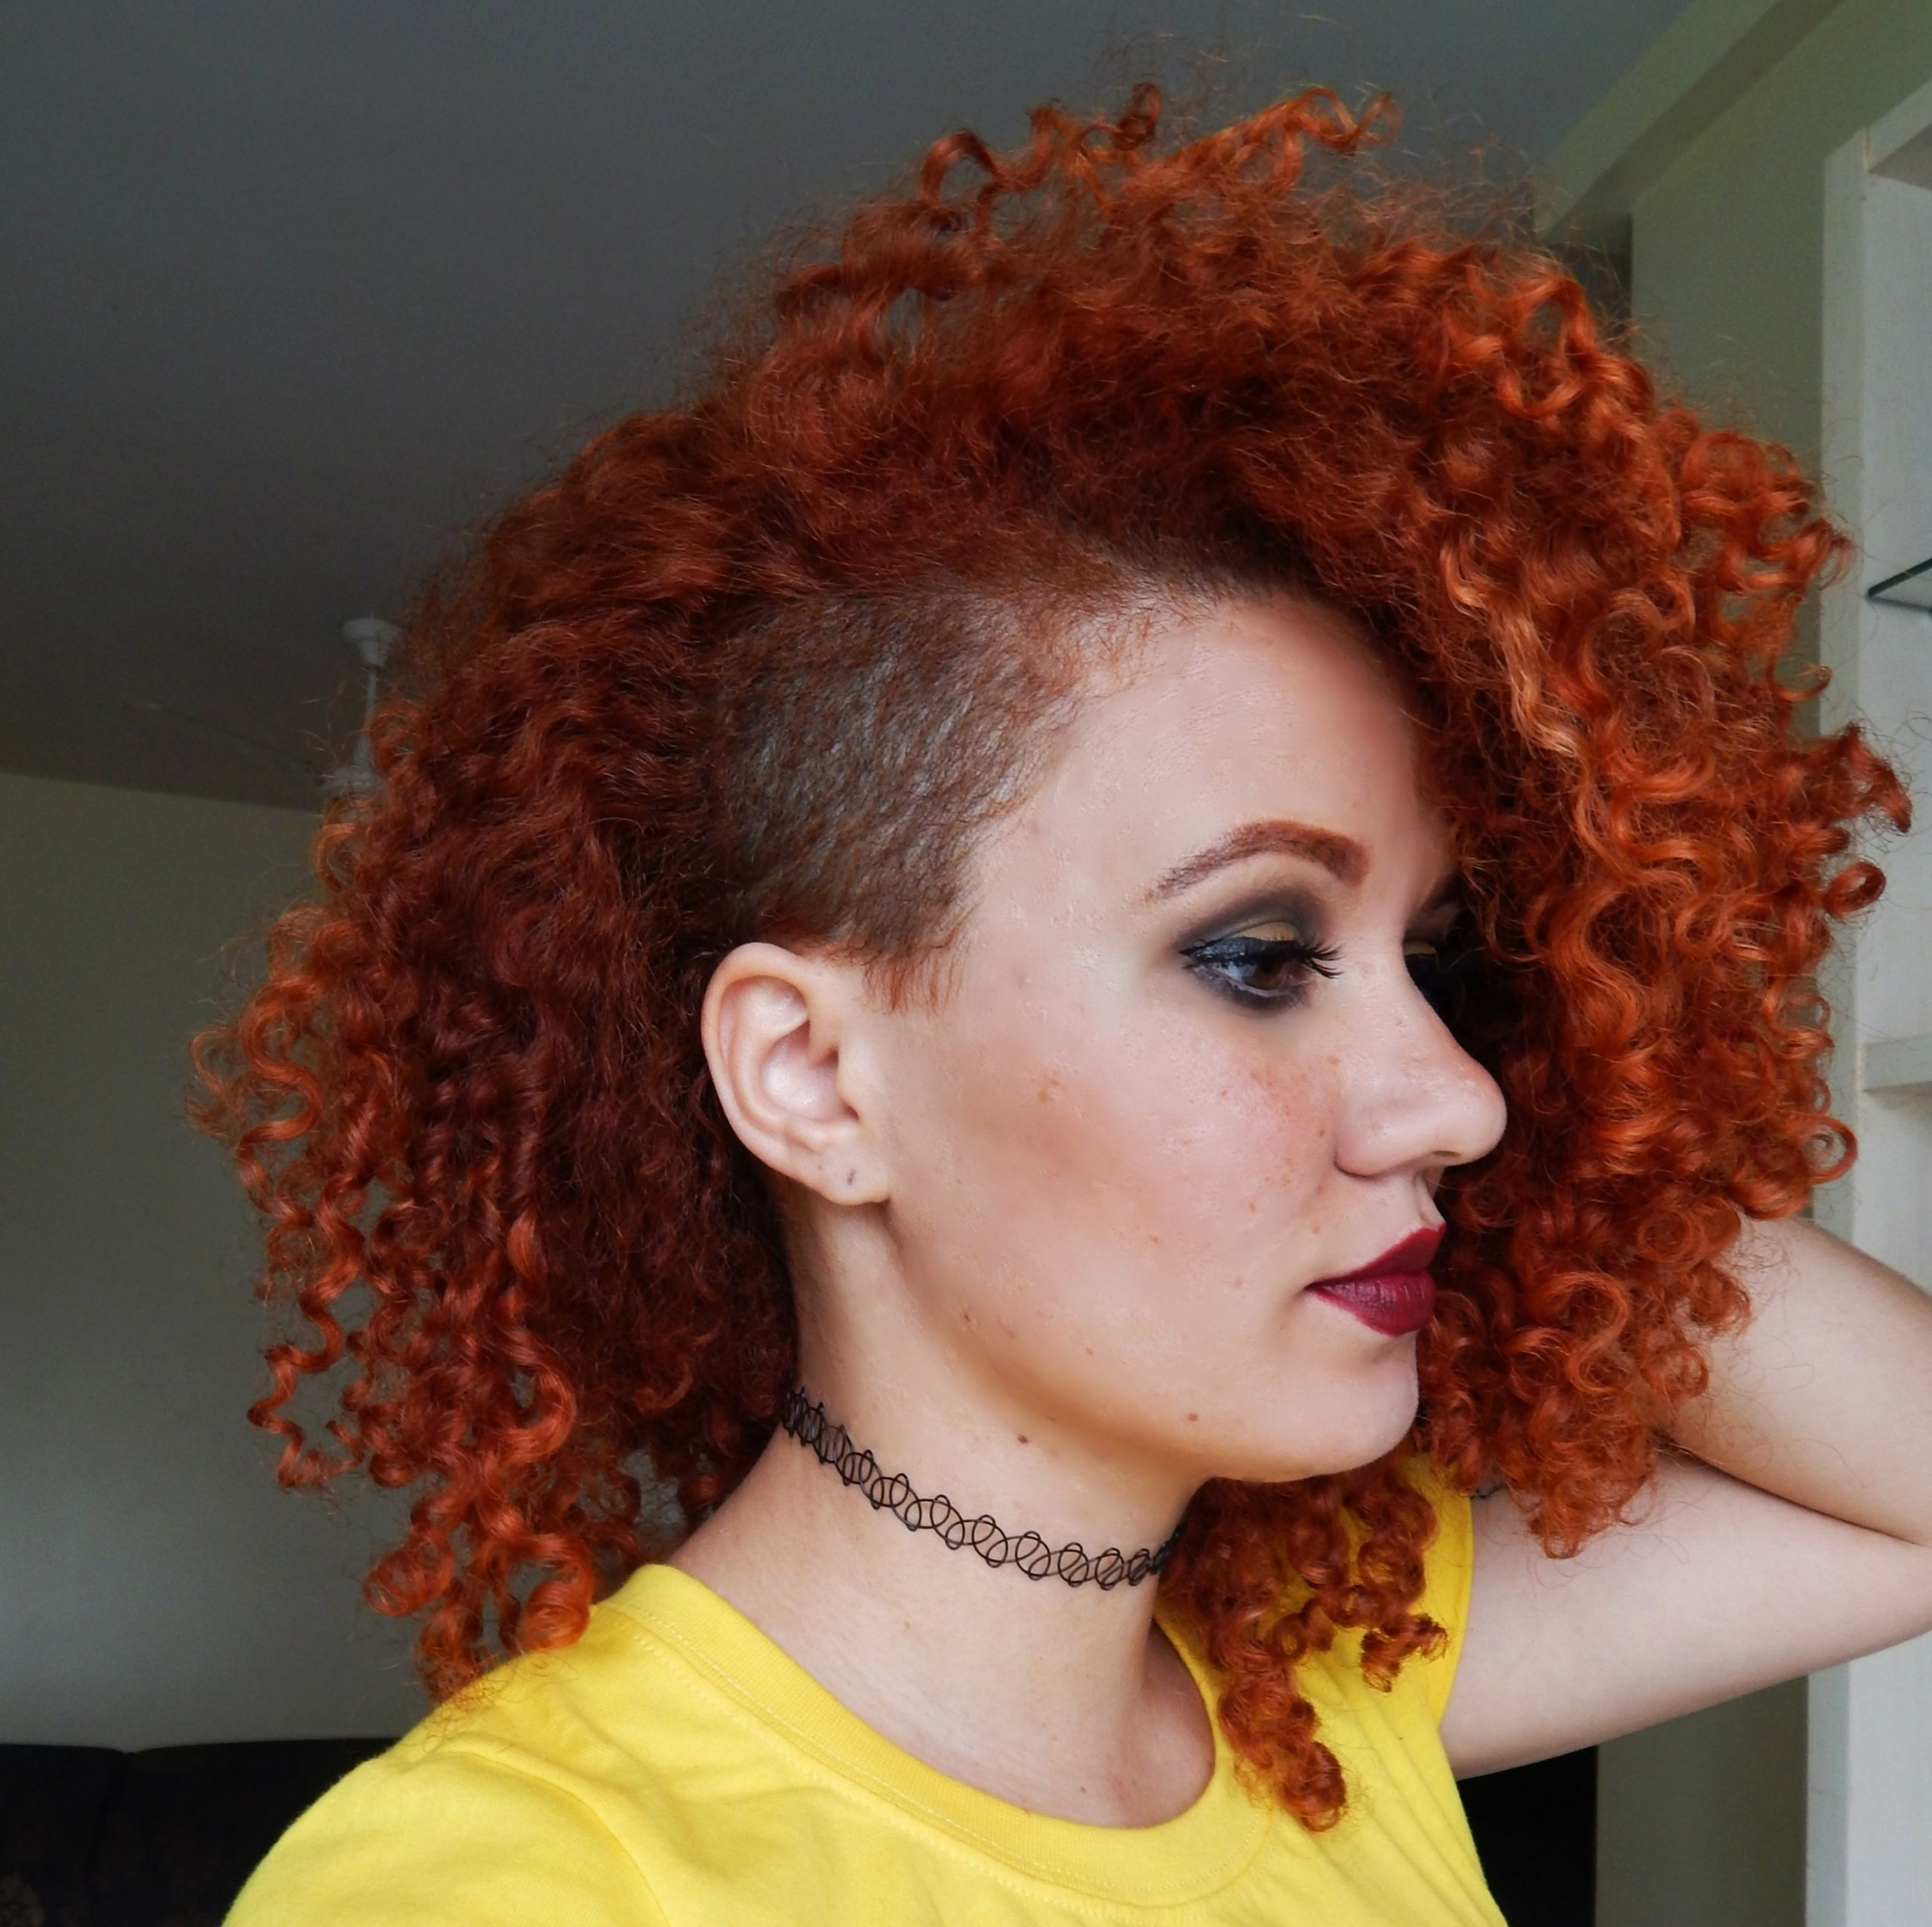 Pin On Hair Dare: Undercuts And Sidecuts Half Shaved Curly Hair